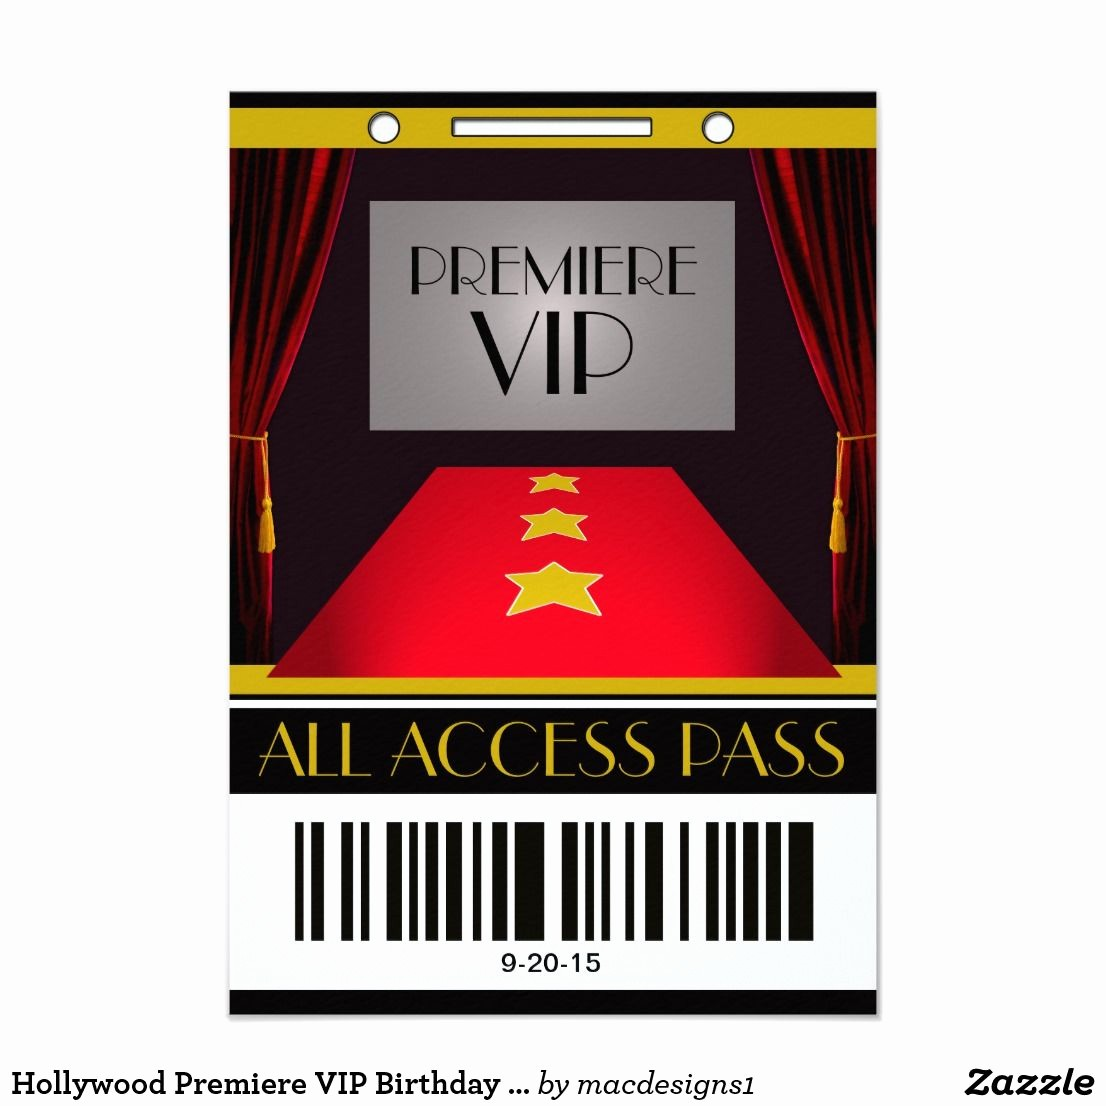 Movie Premiere Invitation Template Free Beautiful Hollywood Premiere